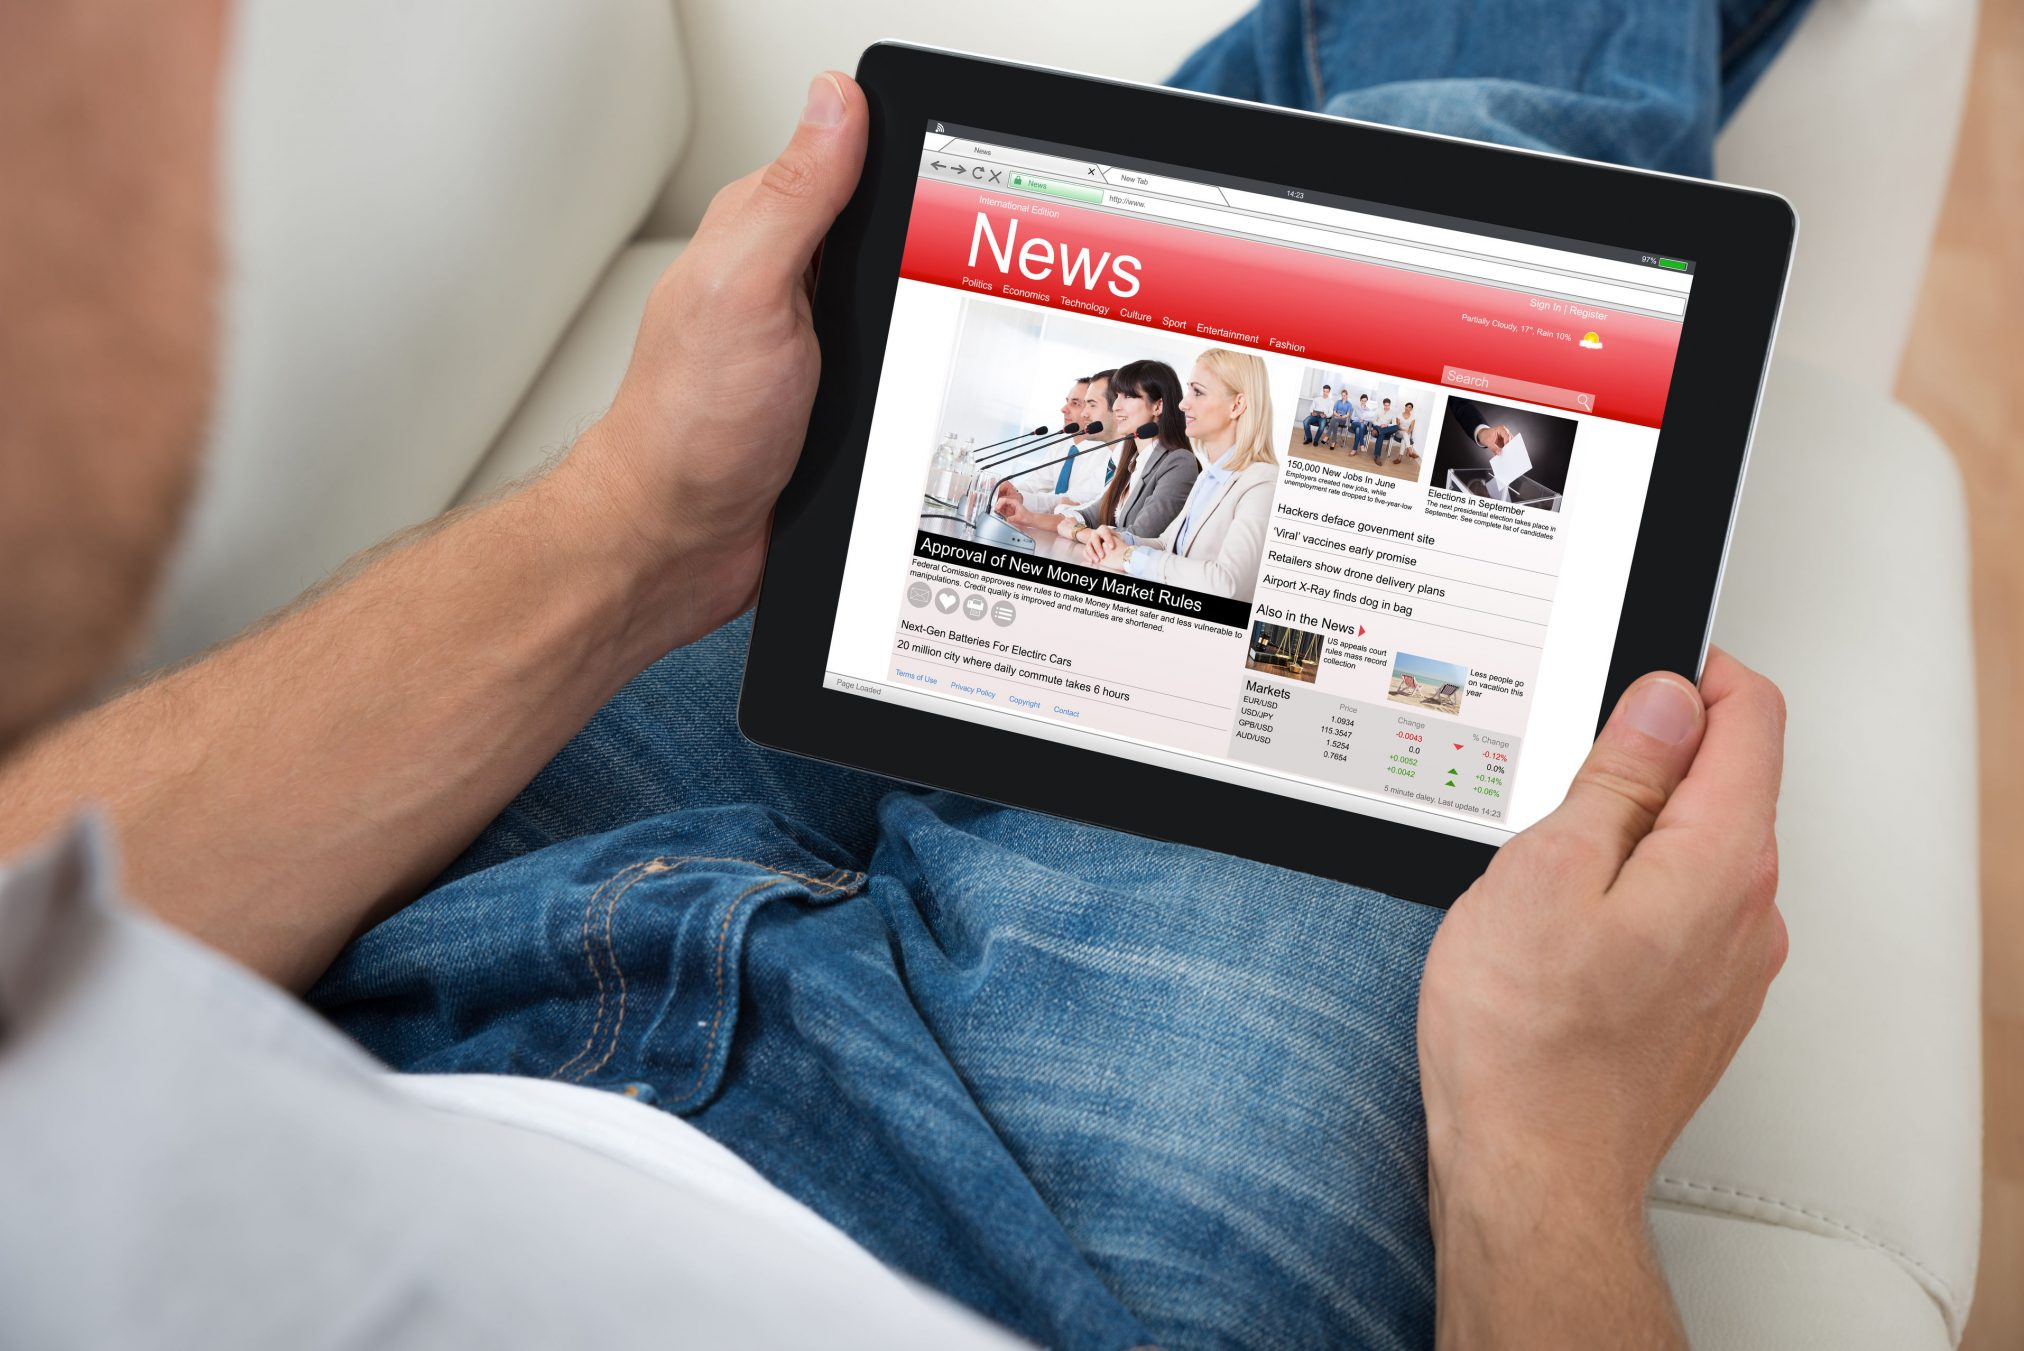 man ipad laptop technology news